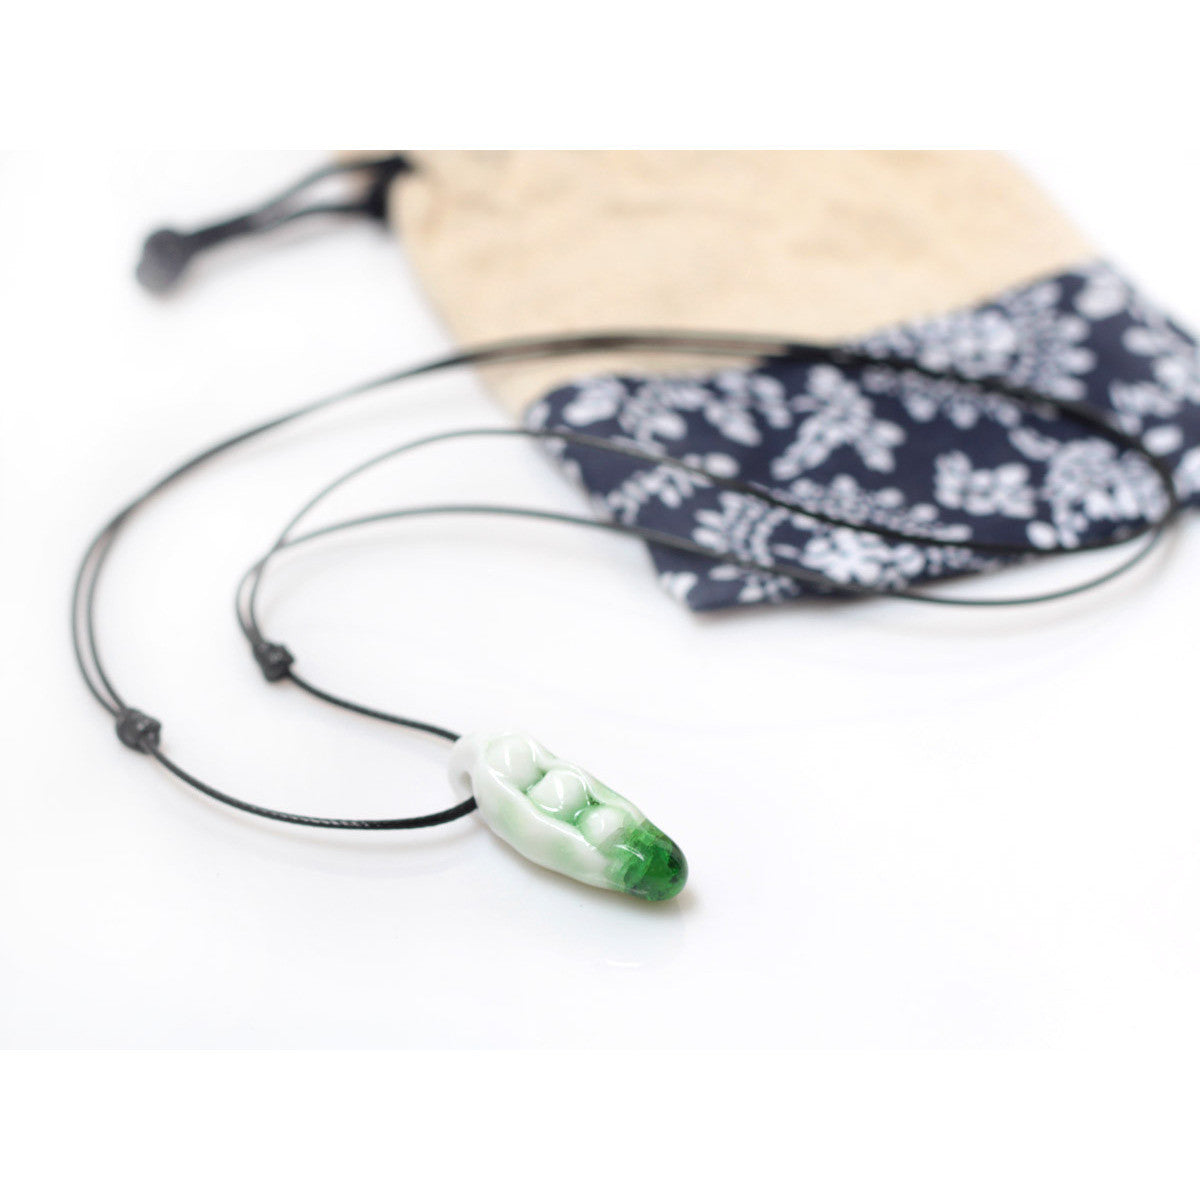 Superlovely pea-shape ceramic cracked crystal necklace